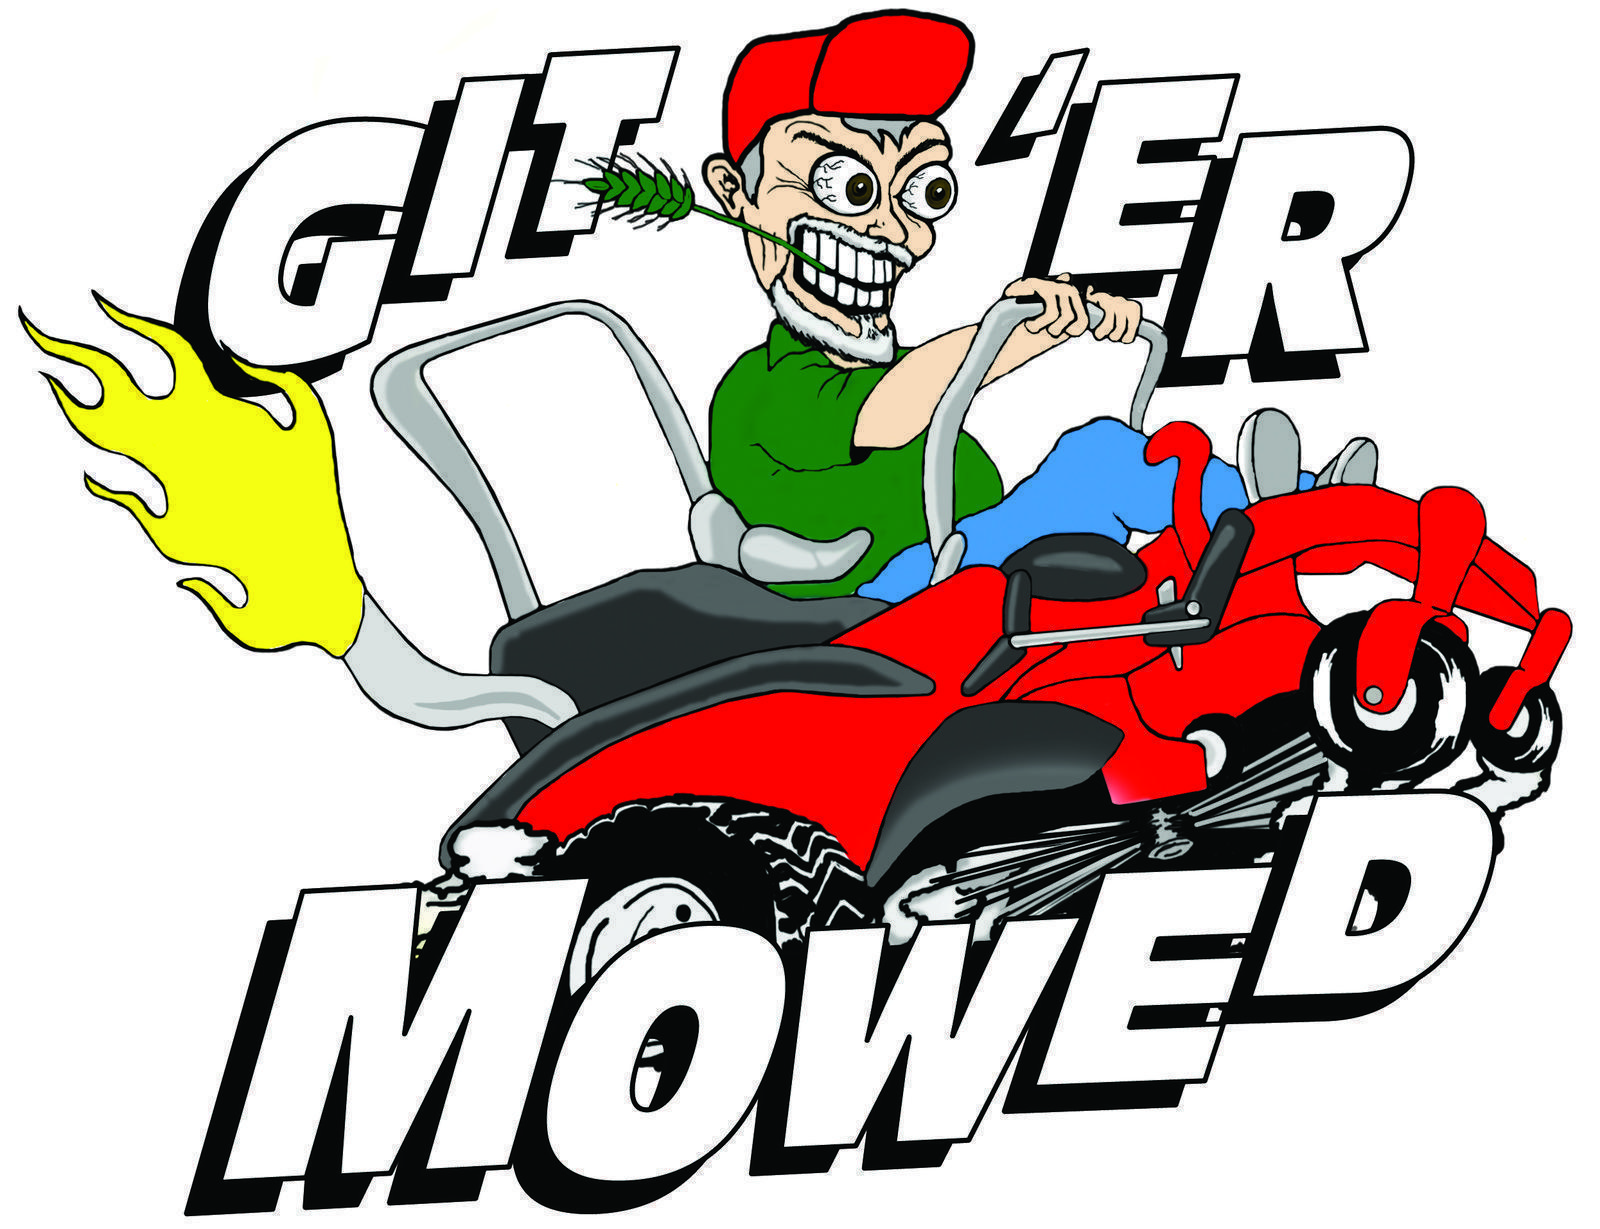 Leslies_Outdoor-Git_Er_Mowed-logo (3)